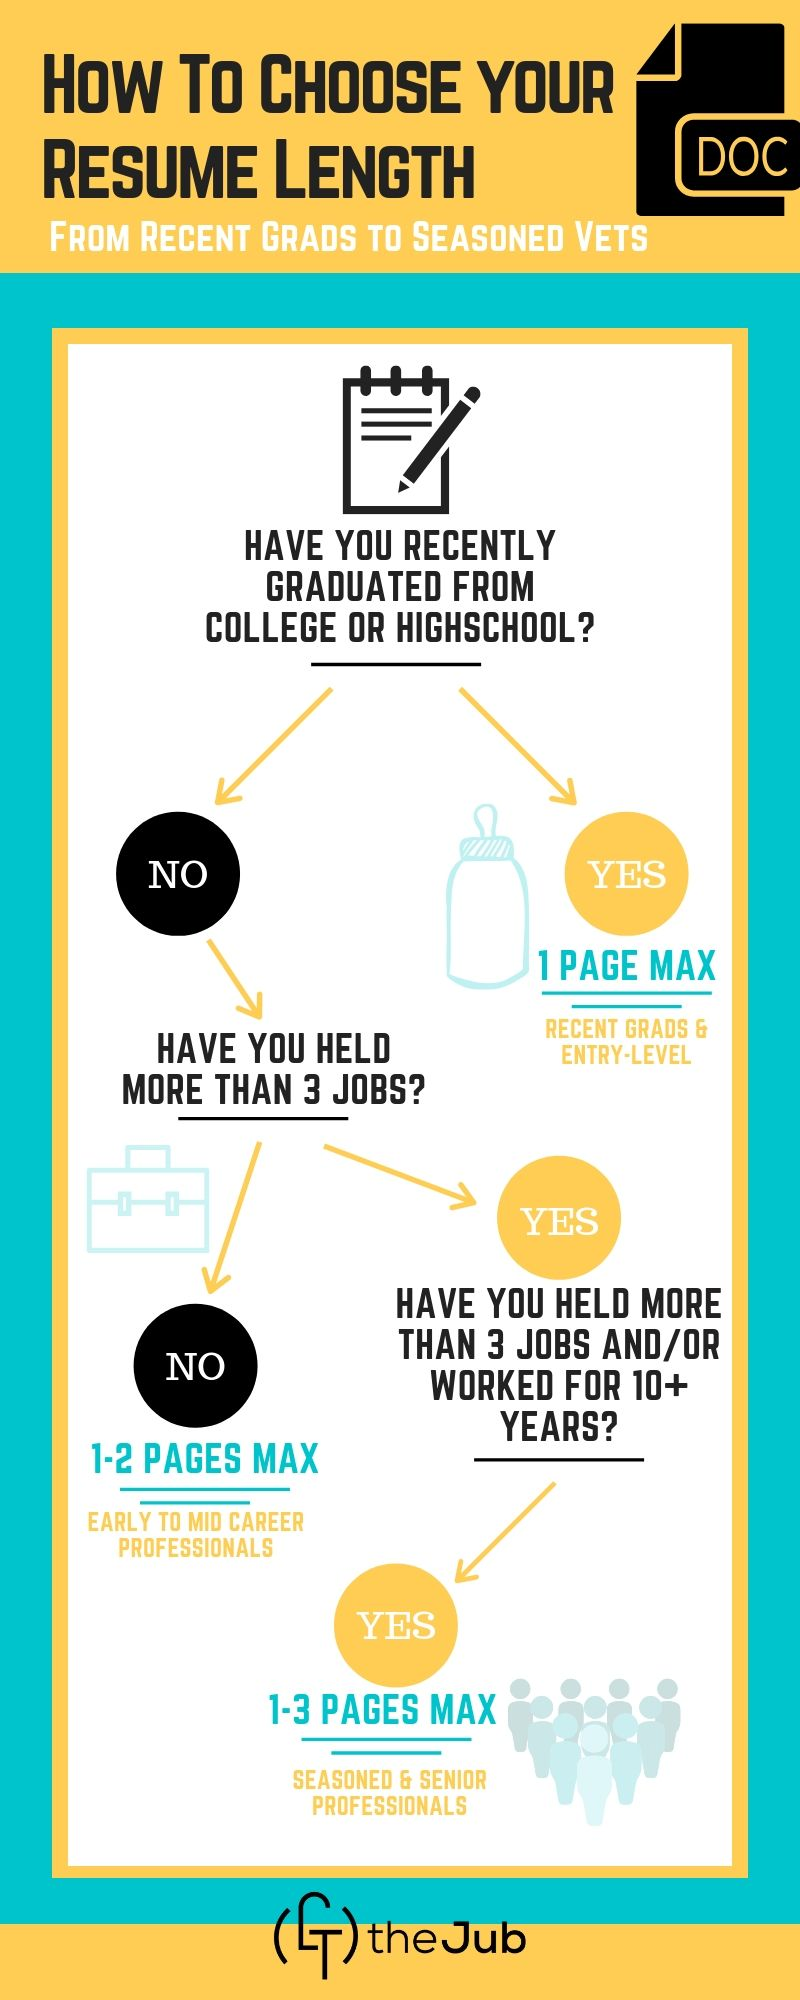 How To Choose a Resume Length - Infographic.jpg